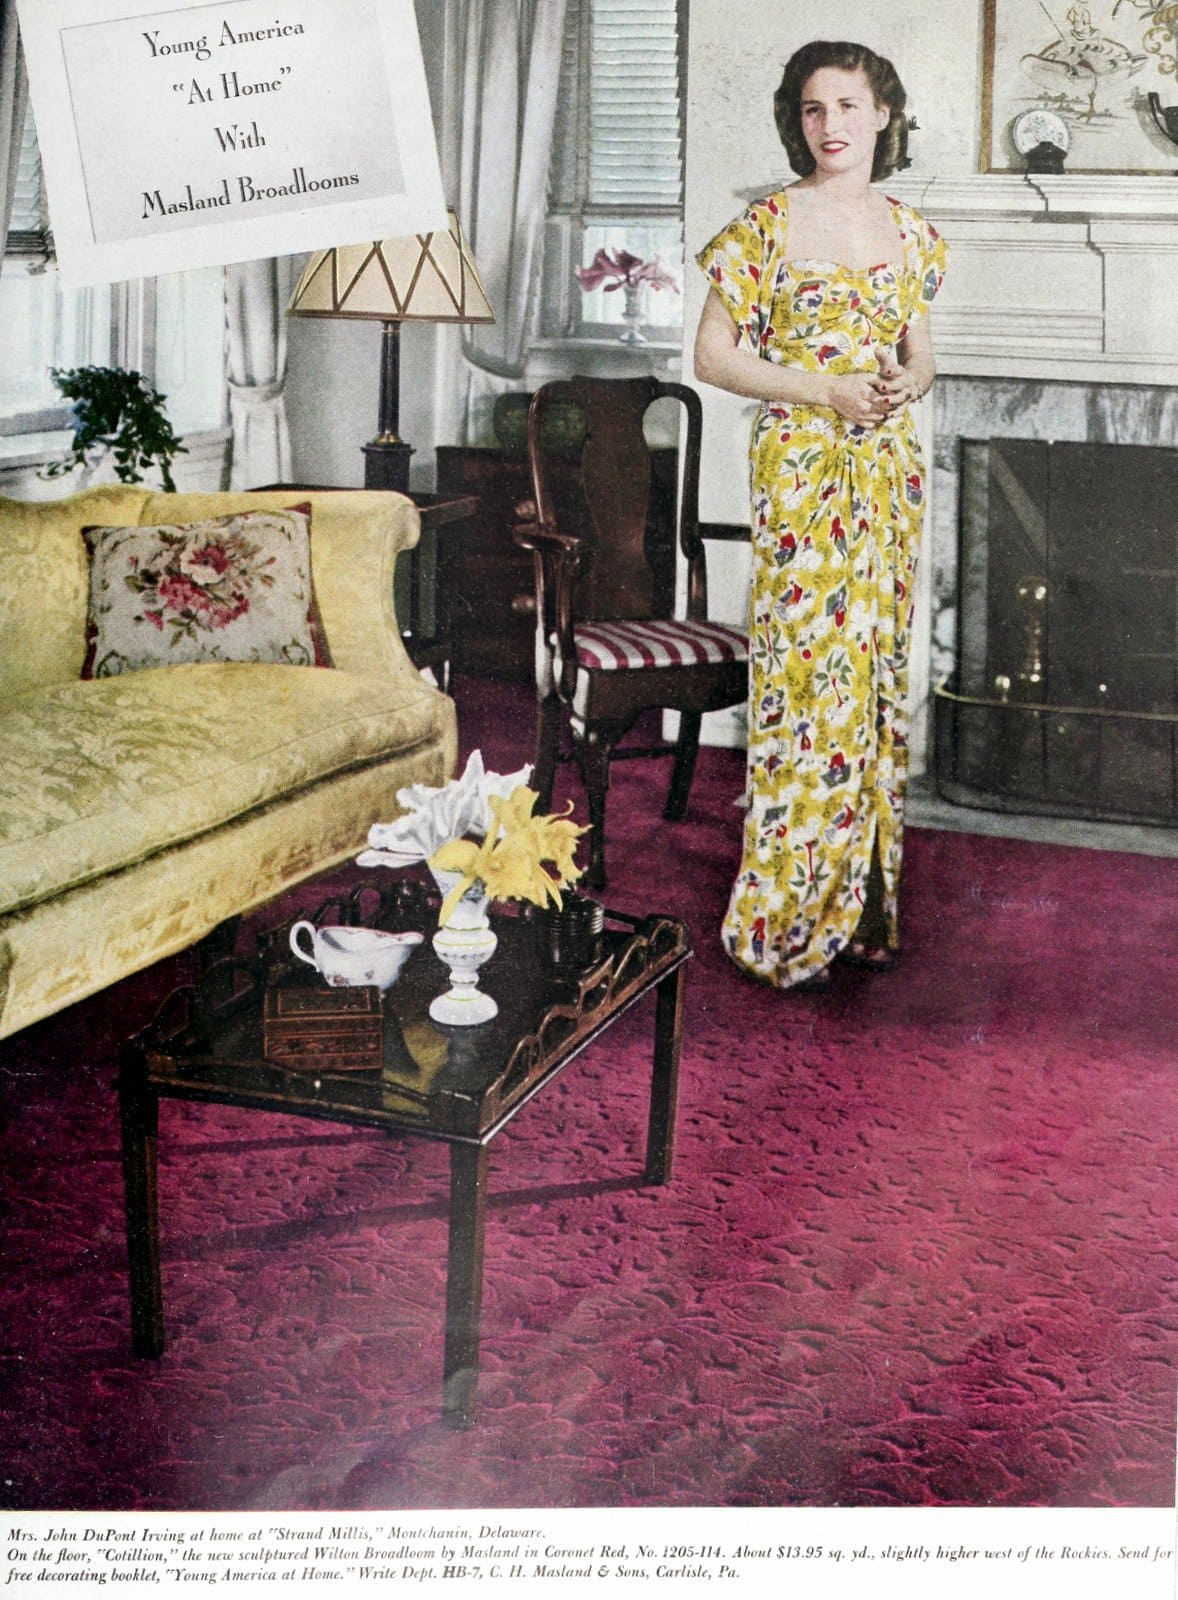 Mrs John DuPont Irving - Rich wife from the 1940s with Masland Broadloom Rug